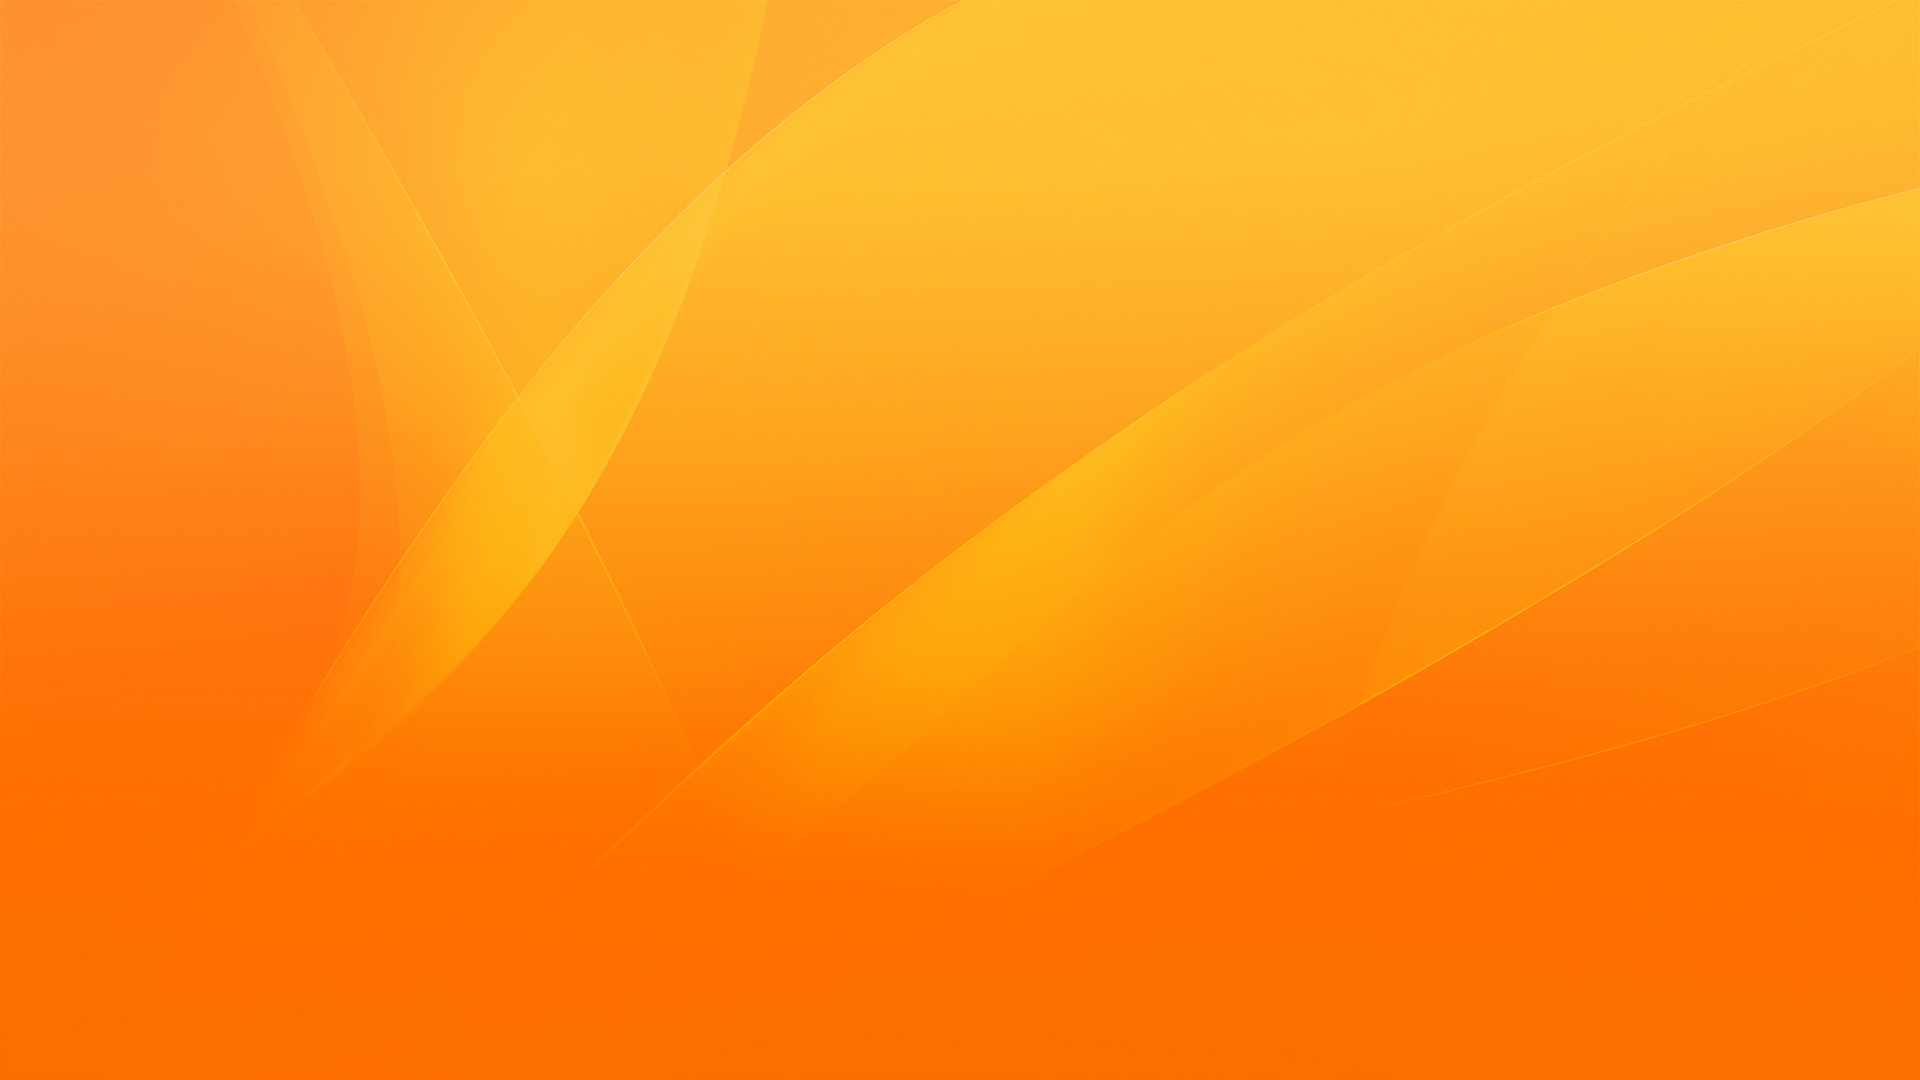 Orange Wallpapers High Quality Download 1920x1080